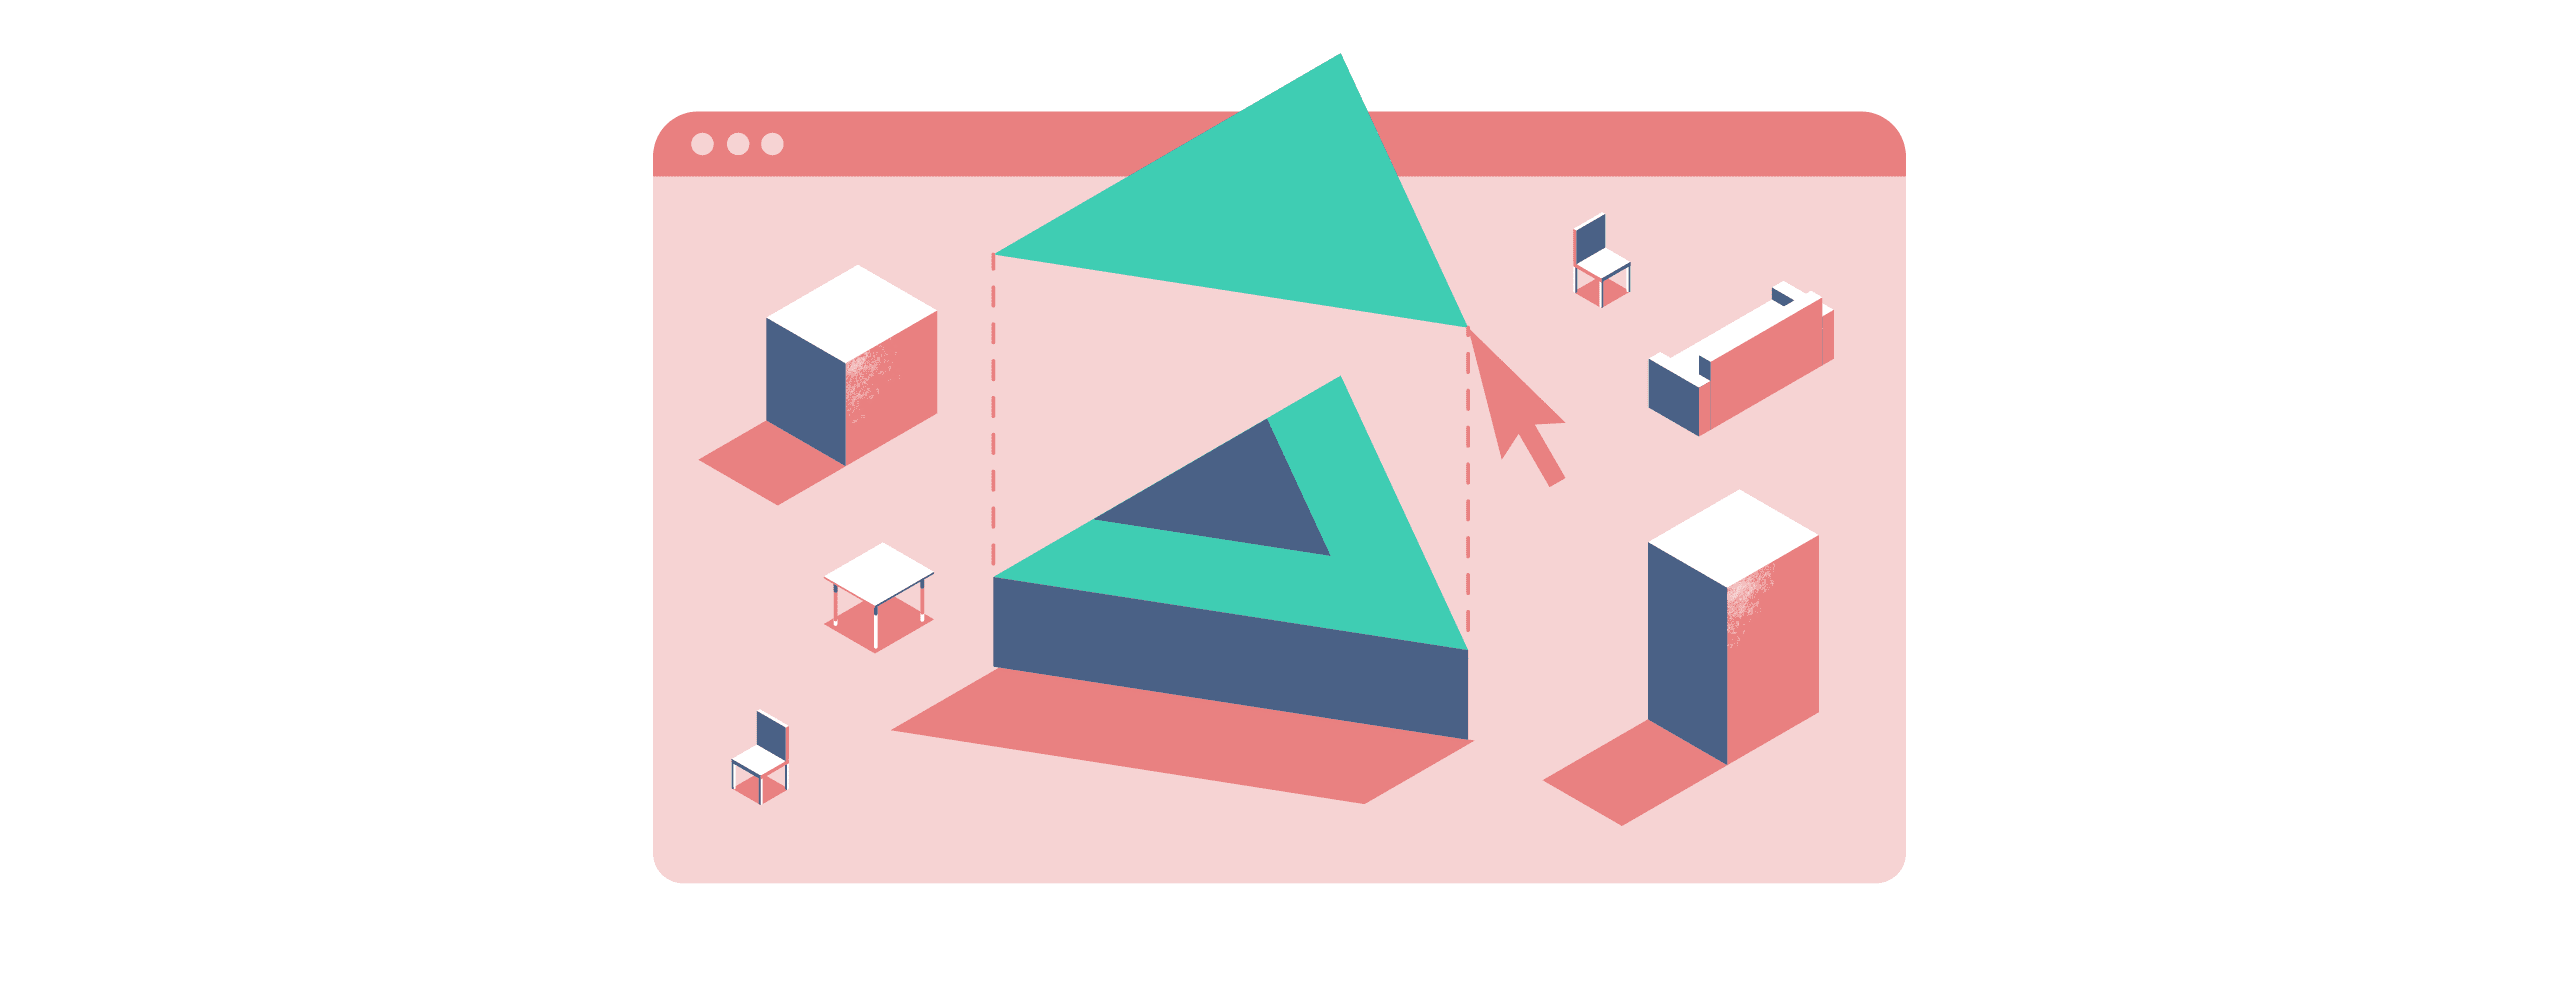 Building a 3D iDesigner with Vue js: Designing a Reactive Entity System